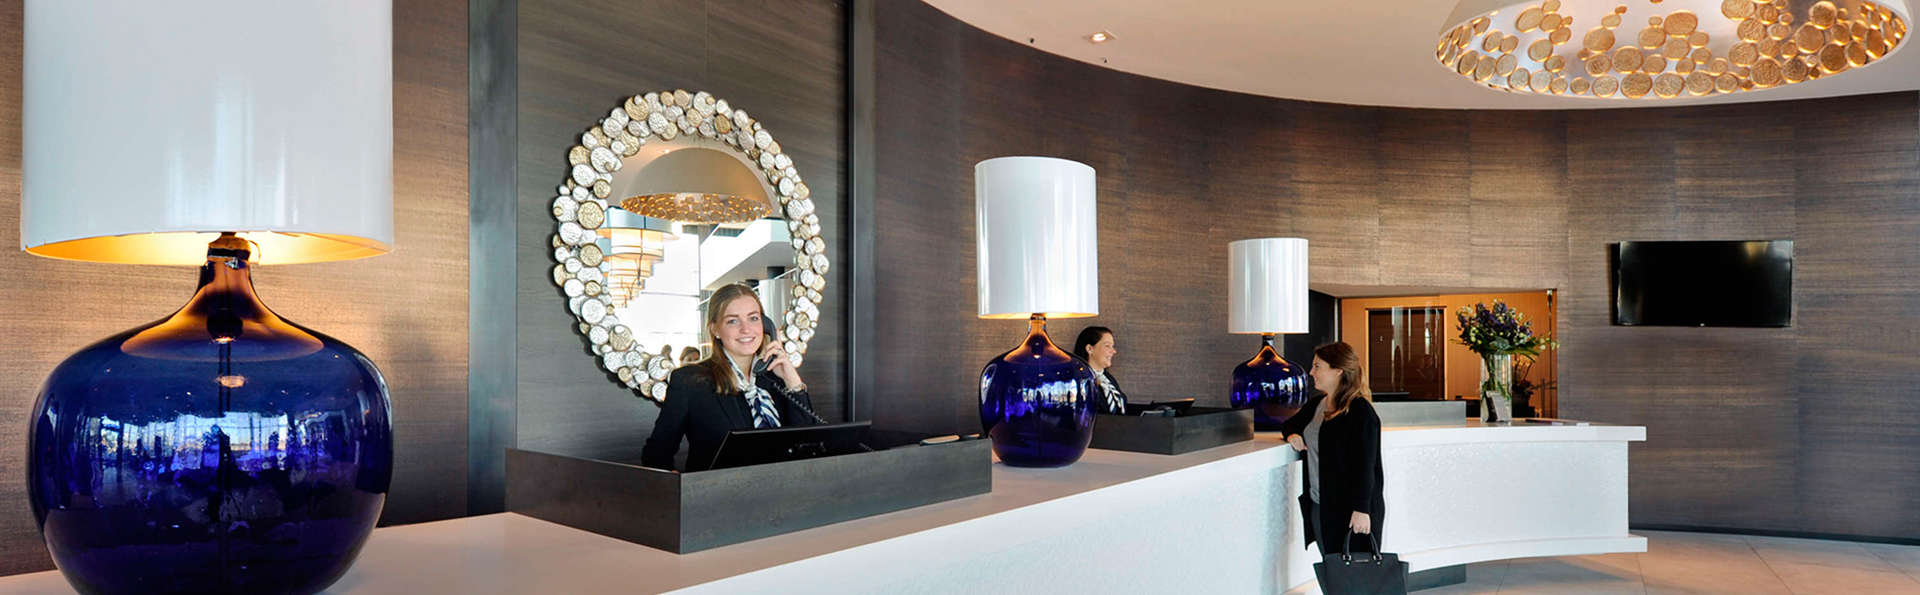 Van der Valk Hotel Tiel - Edit_Reception.jpg